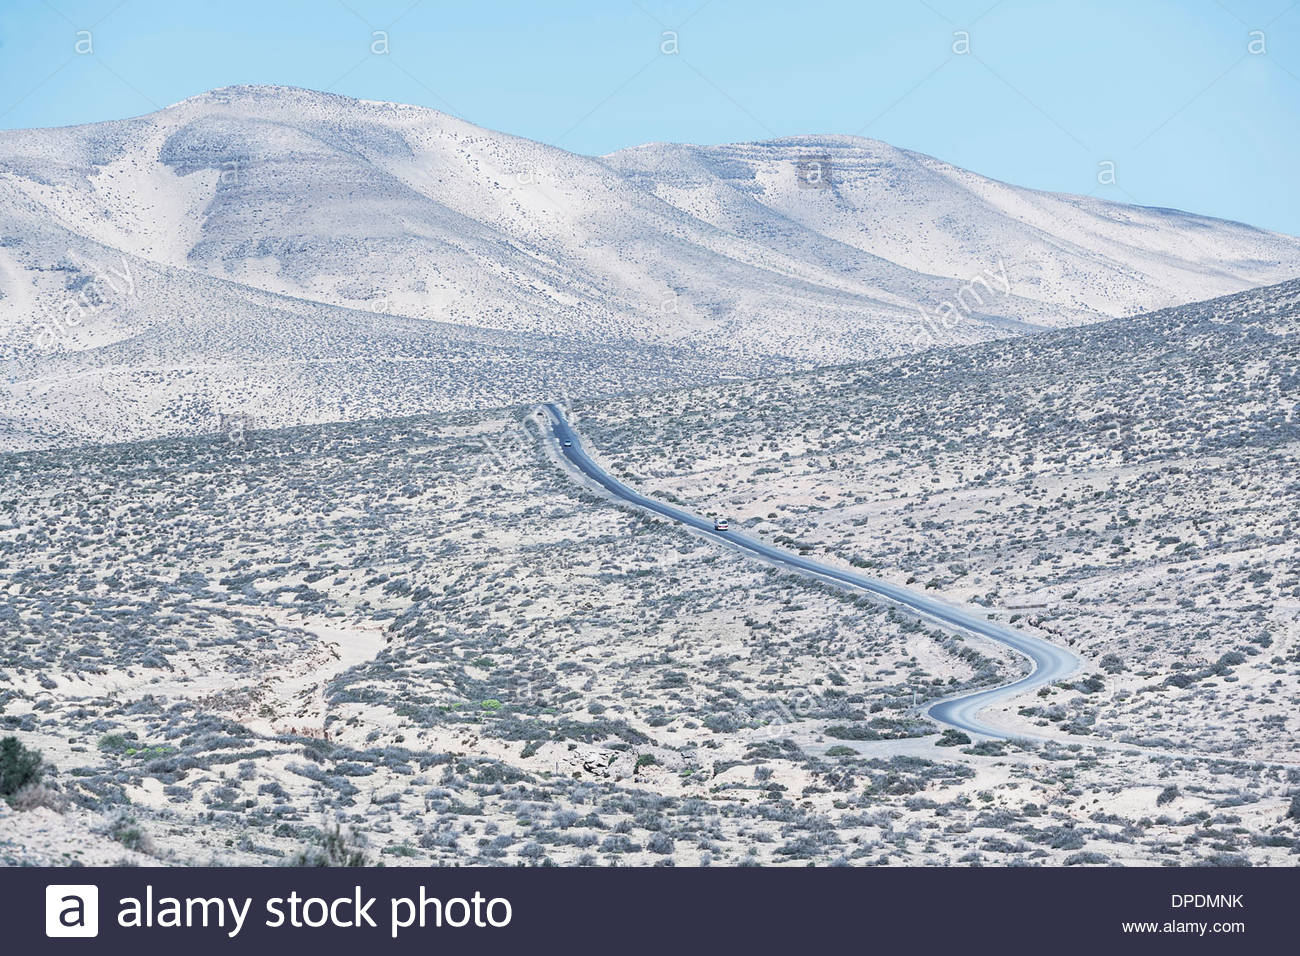 Road winding through Fuerteventura landscape, Canary Islands, Spain - Stock Image